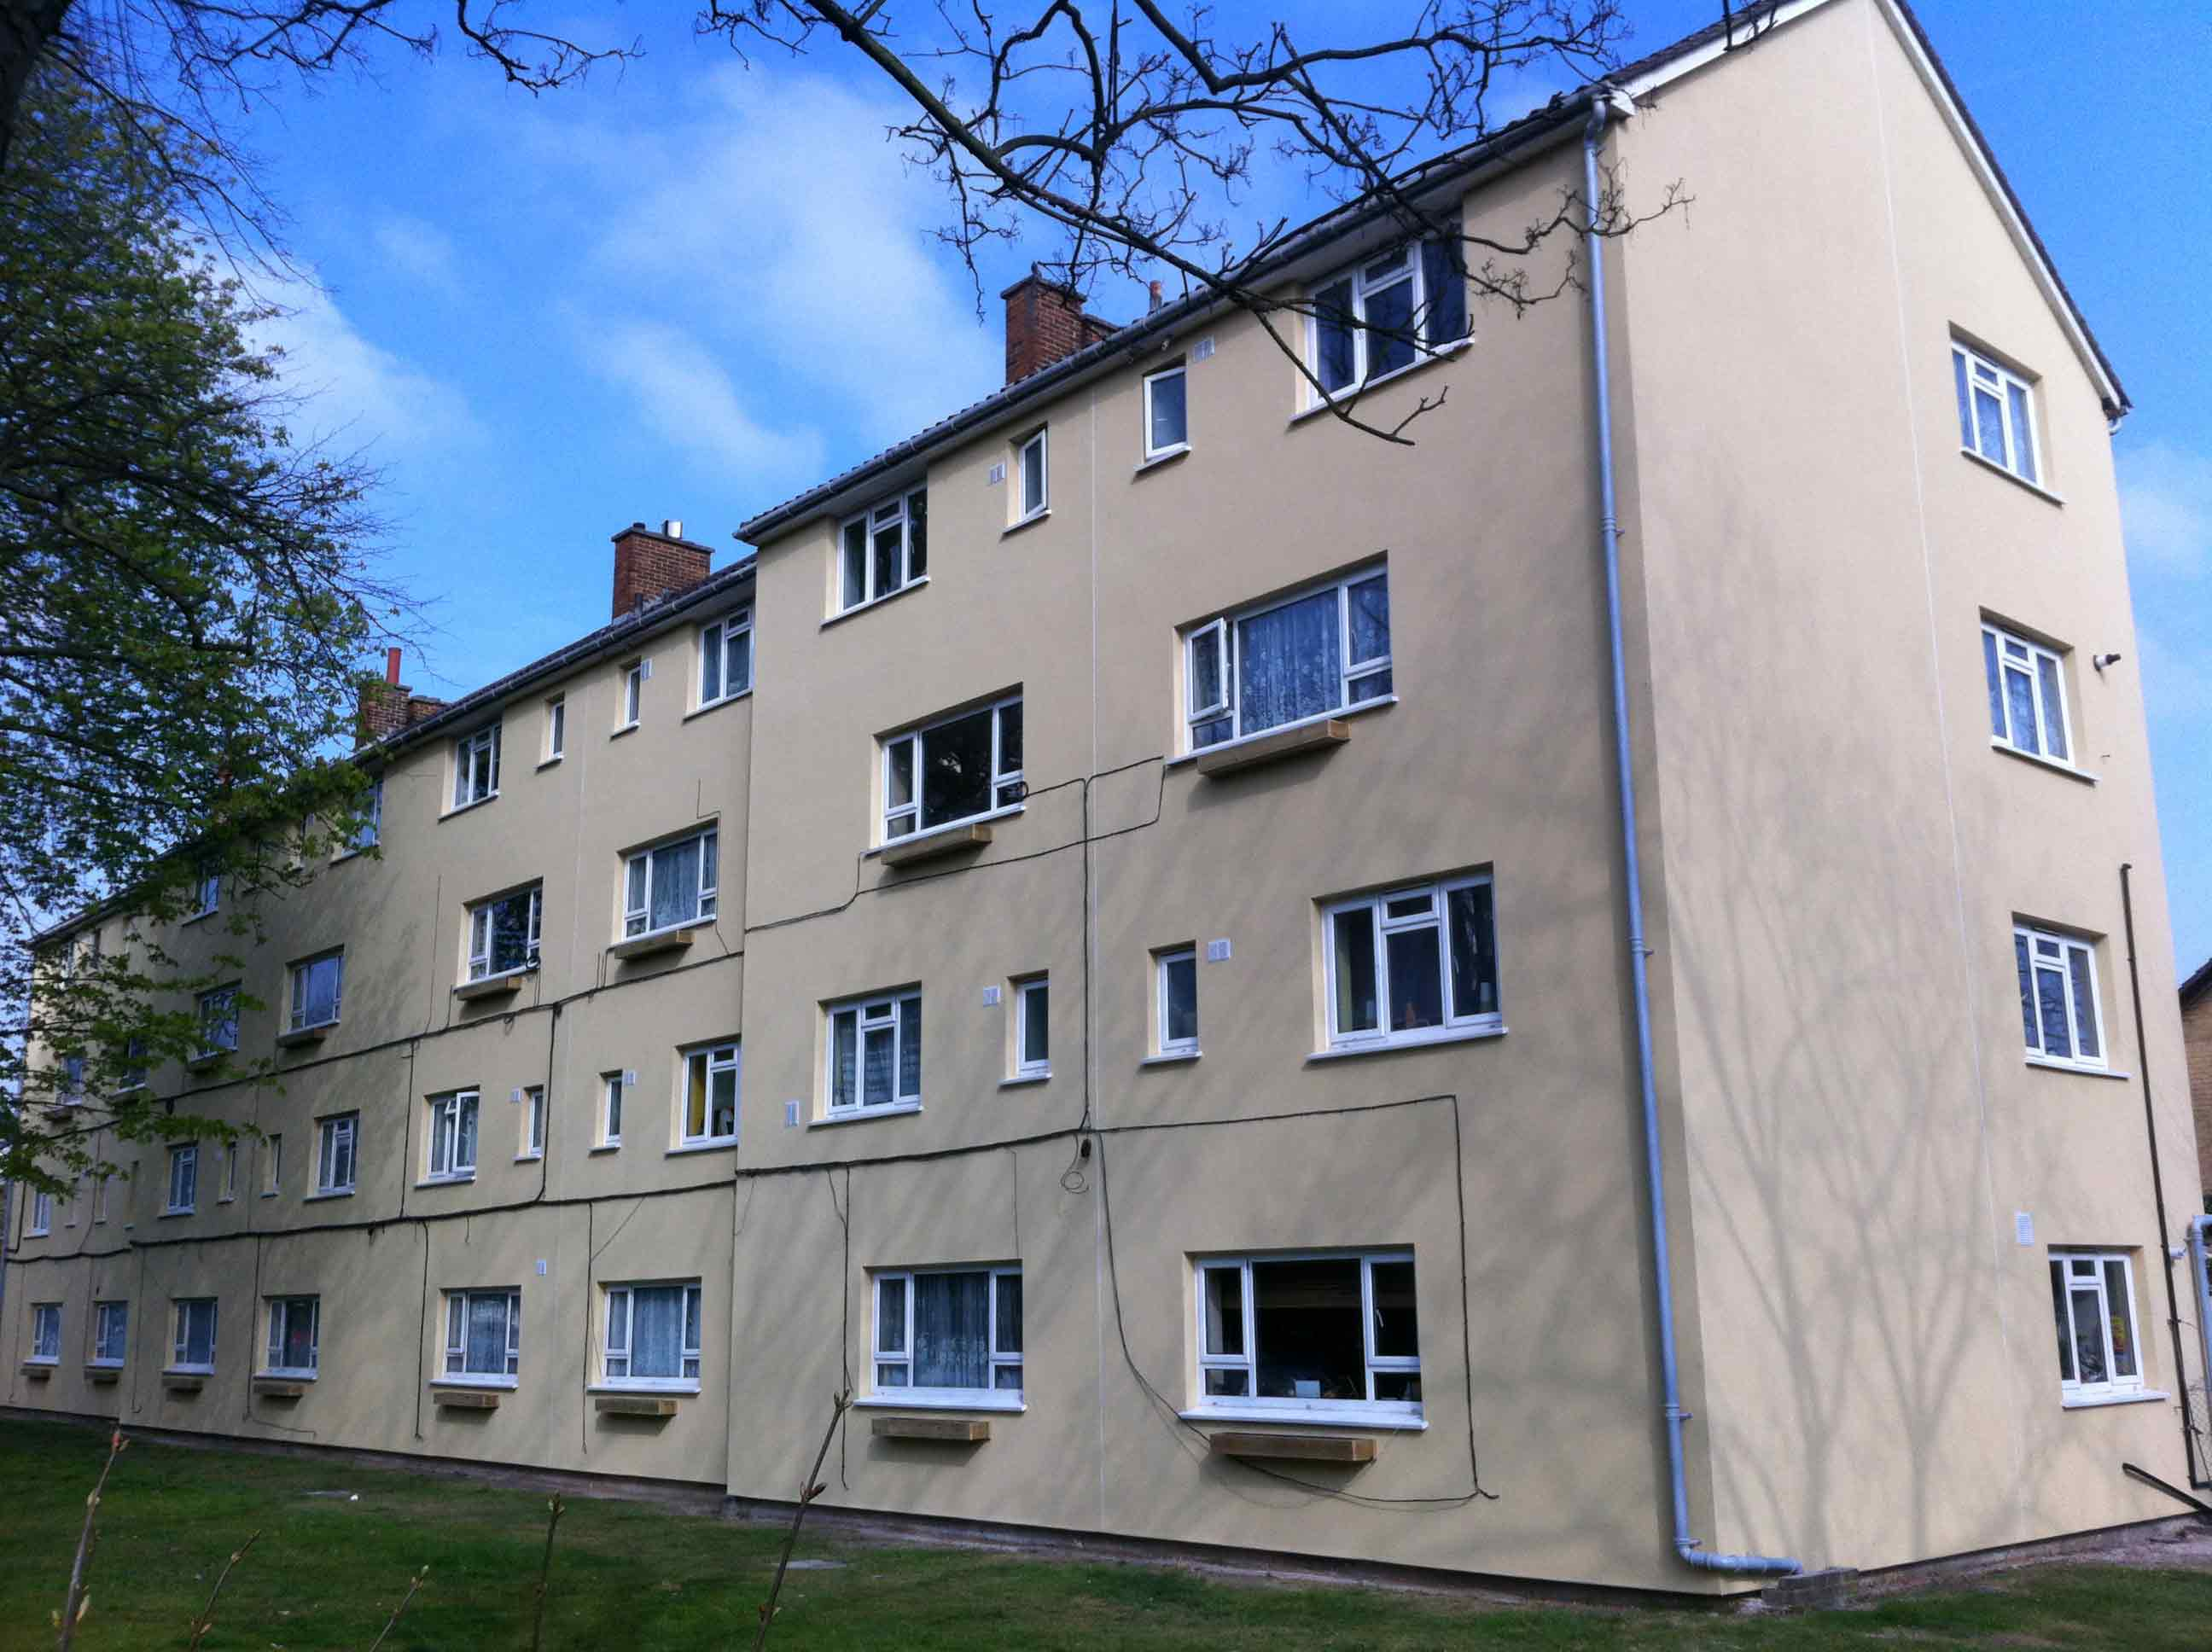 After Insulation - Block of flats